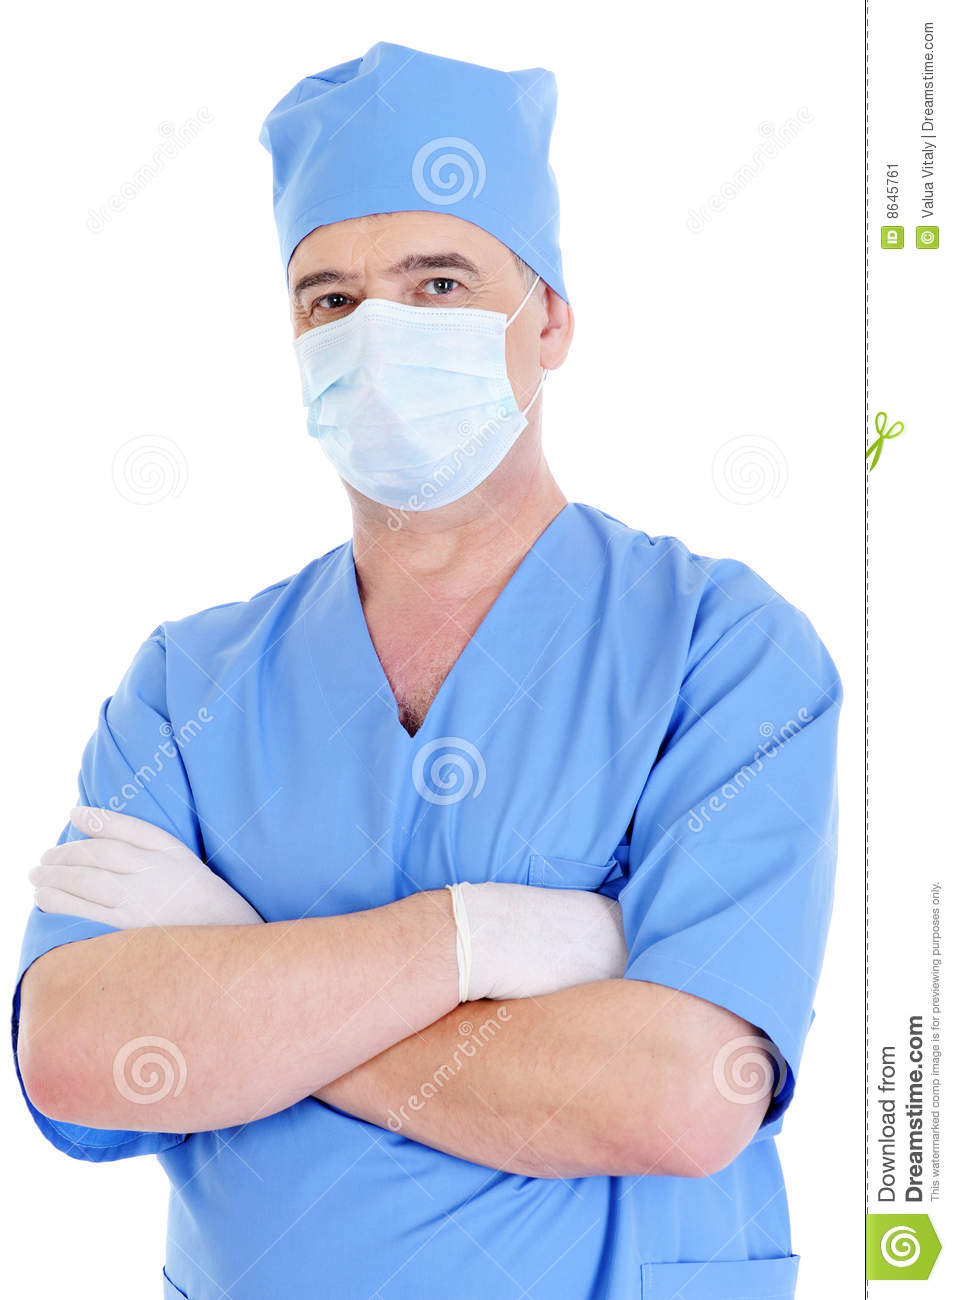 Mature Male Surgeon With Mask And Medical Gloves Stock Image - Image ...